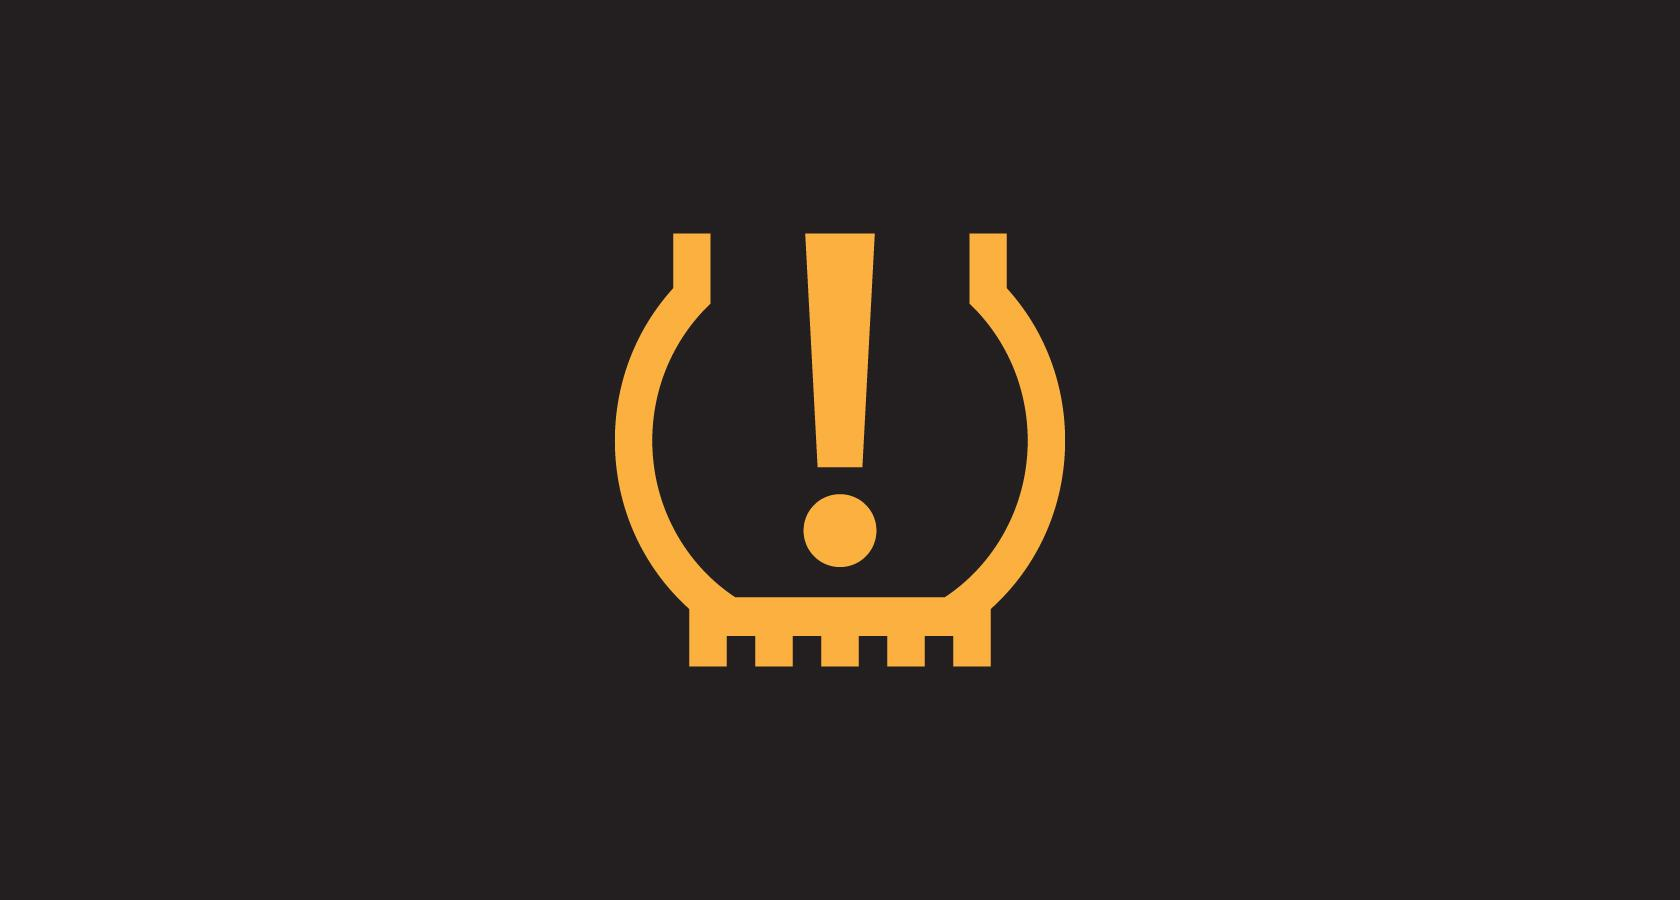 Confusing icon usability for tire pressure management system